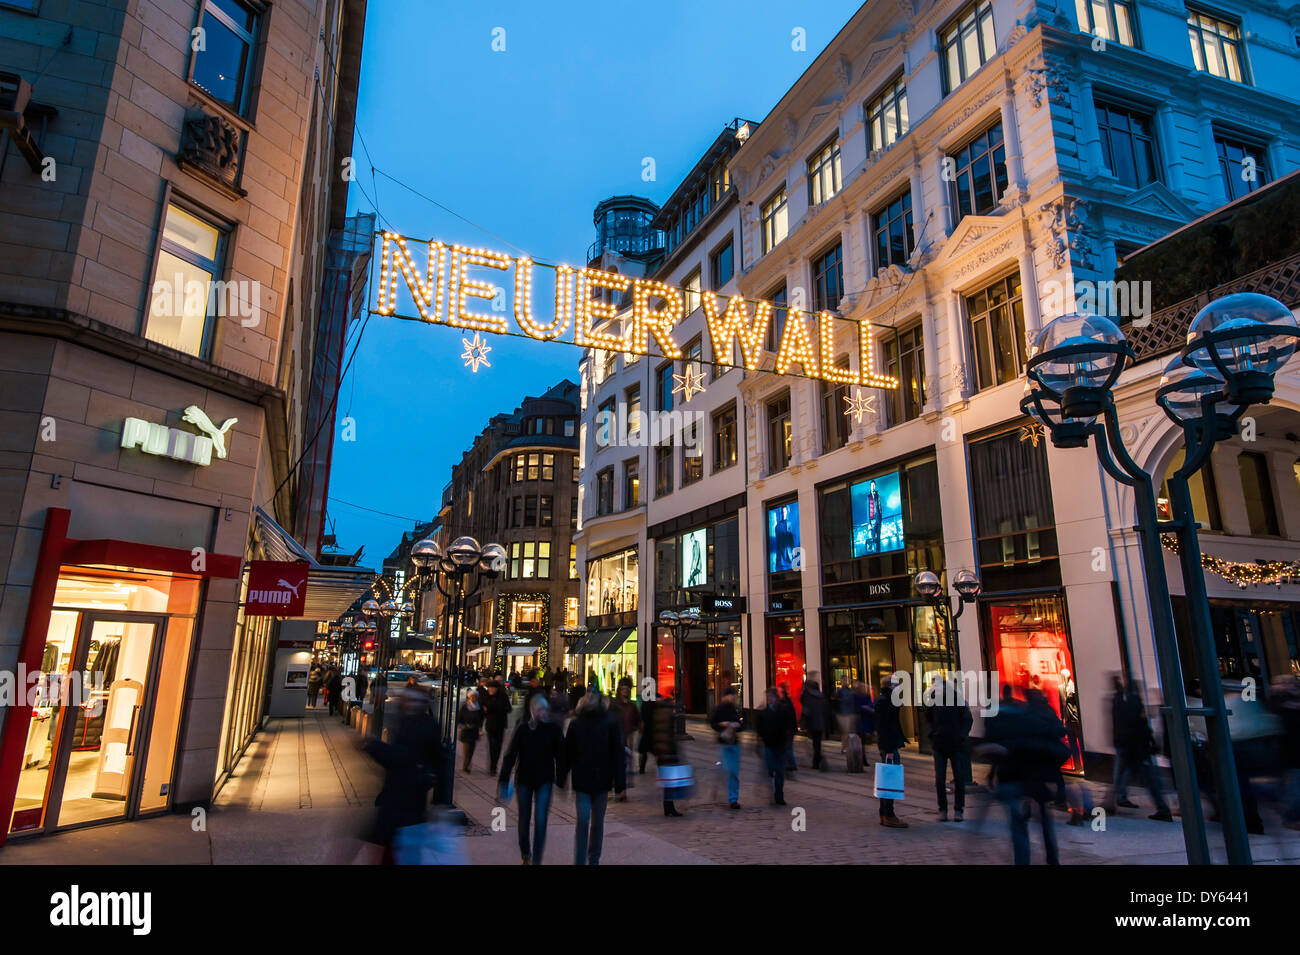 shopping street in hamburg called neuer wall at christmas time stock photo royalty free image. Black Bedroom Furniture Sets. Home Design Ideas